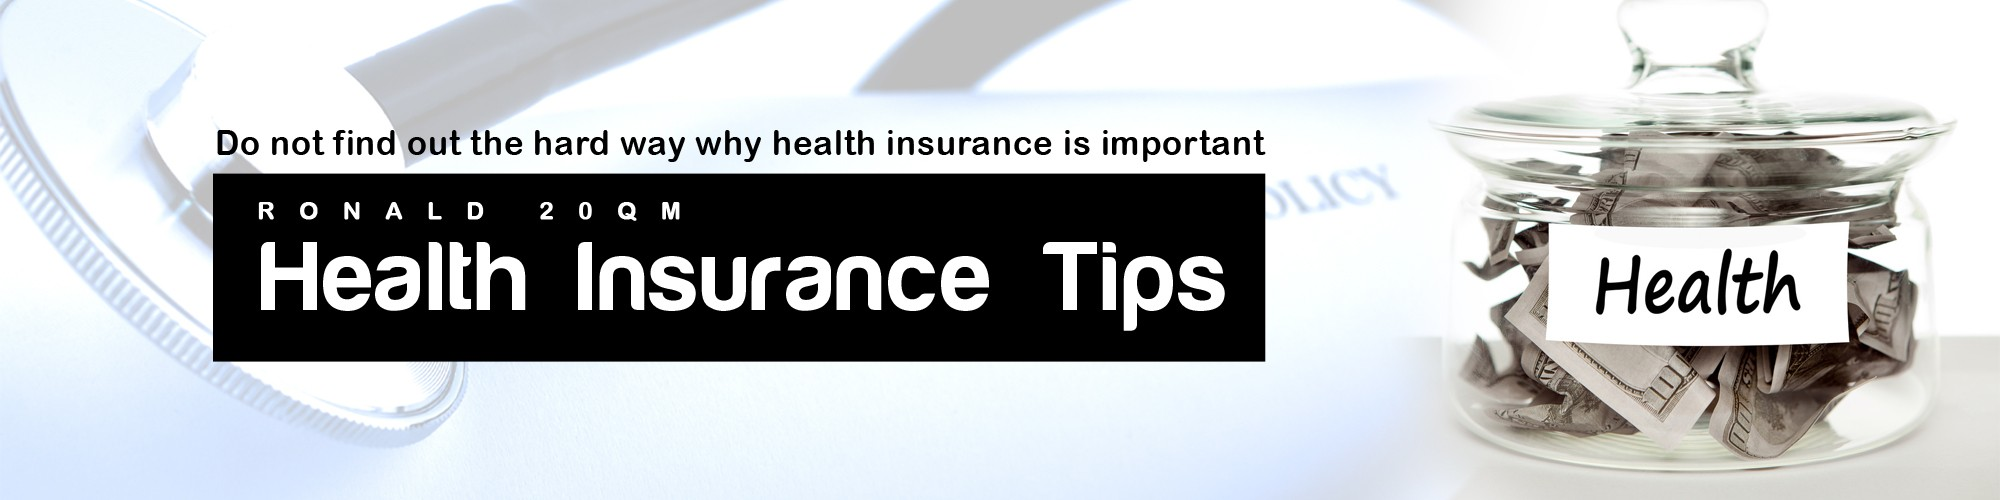 Ronald 20qm Health Insurance Tips Do Not Find Out The Hard Way Why